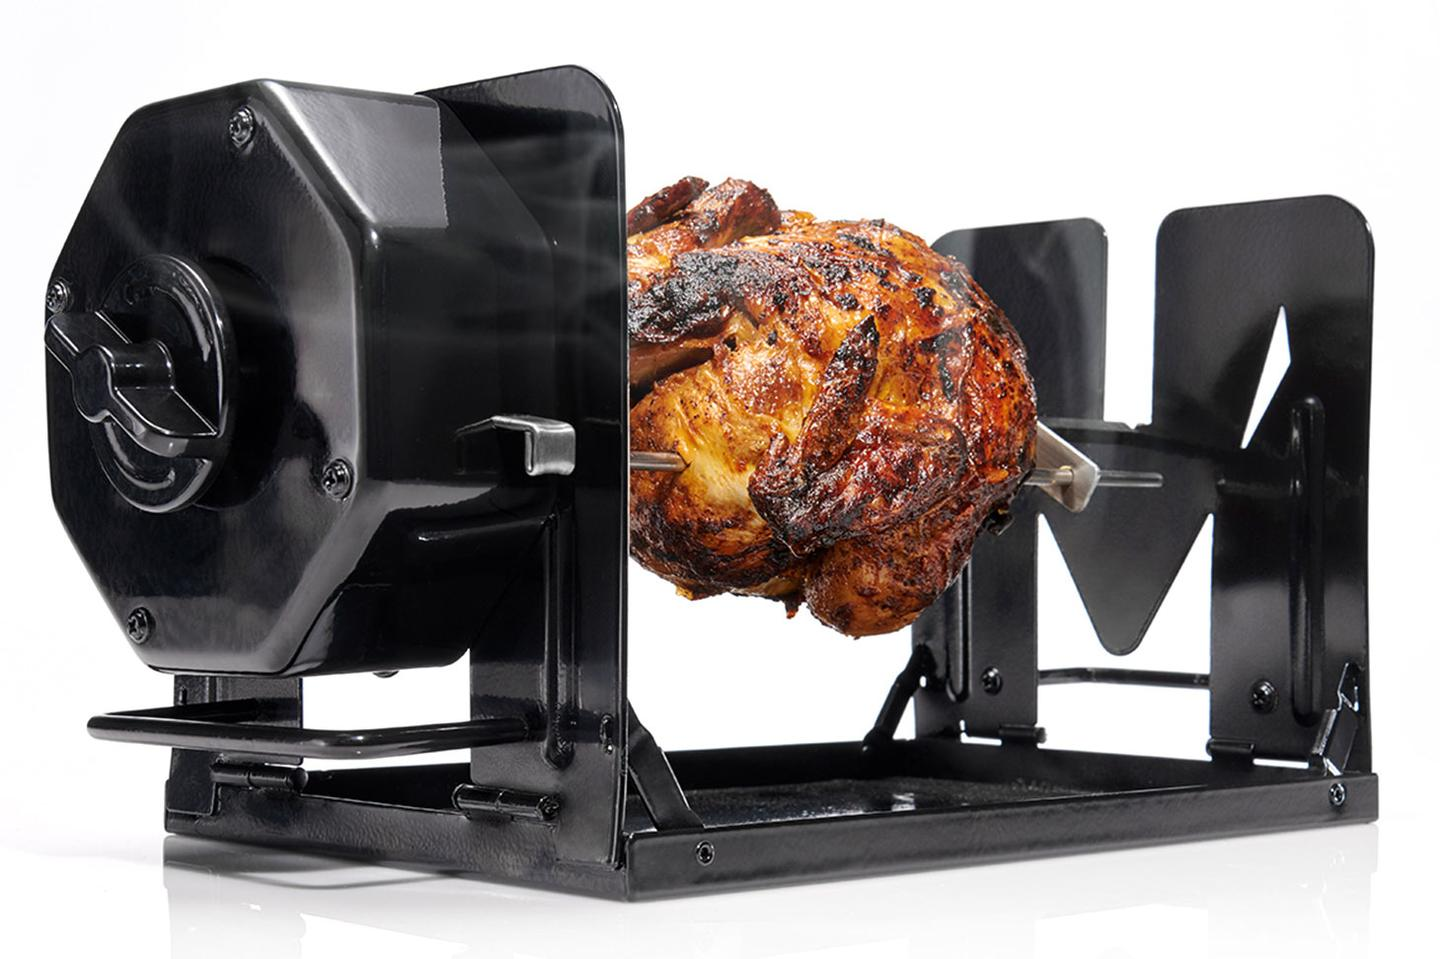 The ROTO-Q 360 is the world's first non-electric self-rotating rotisserie